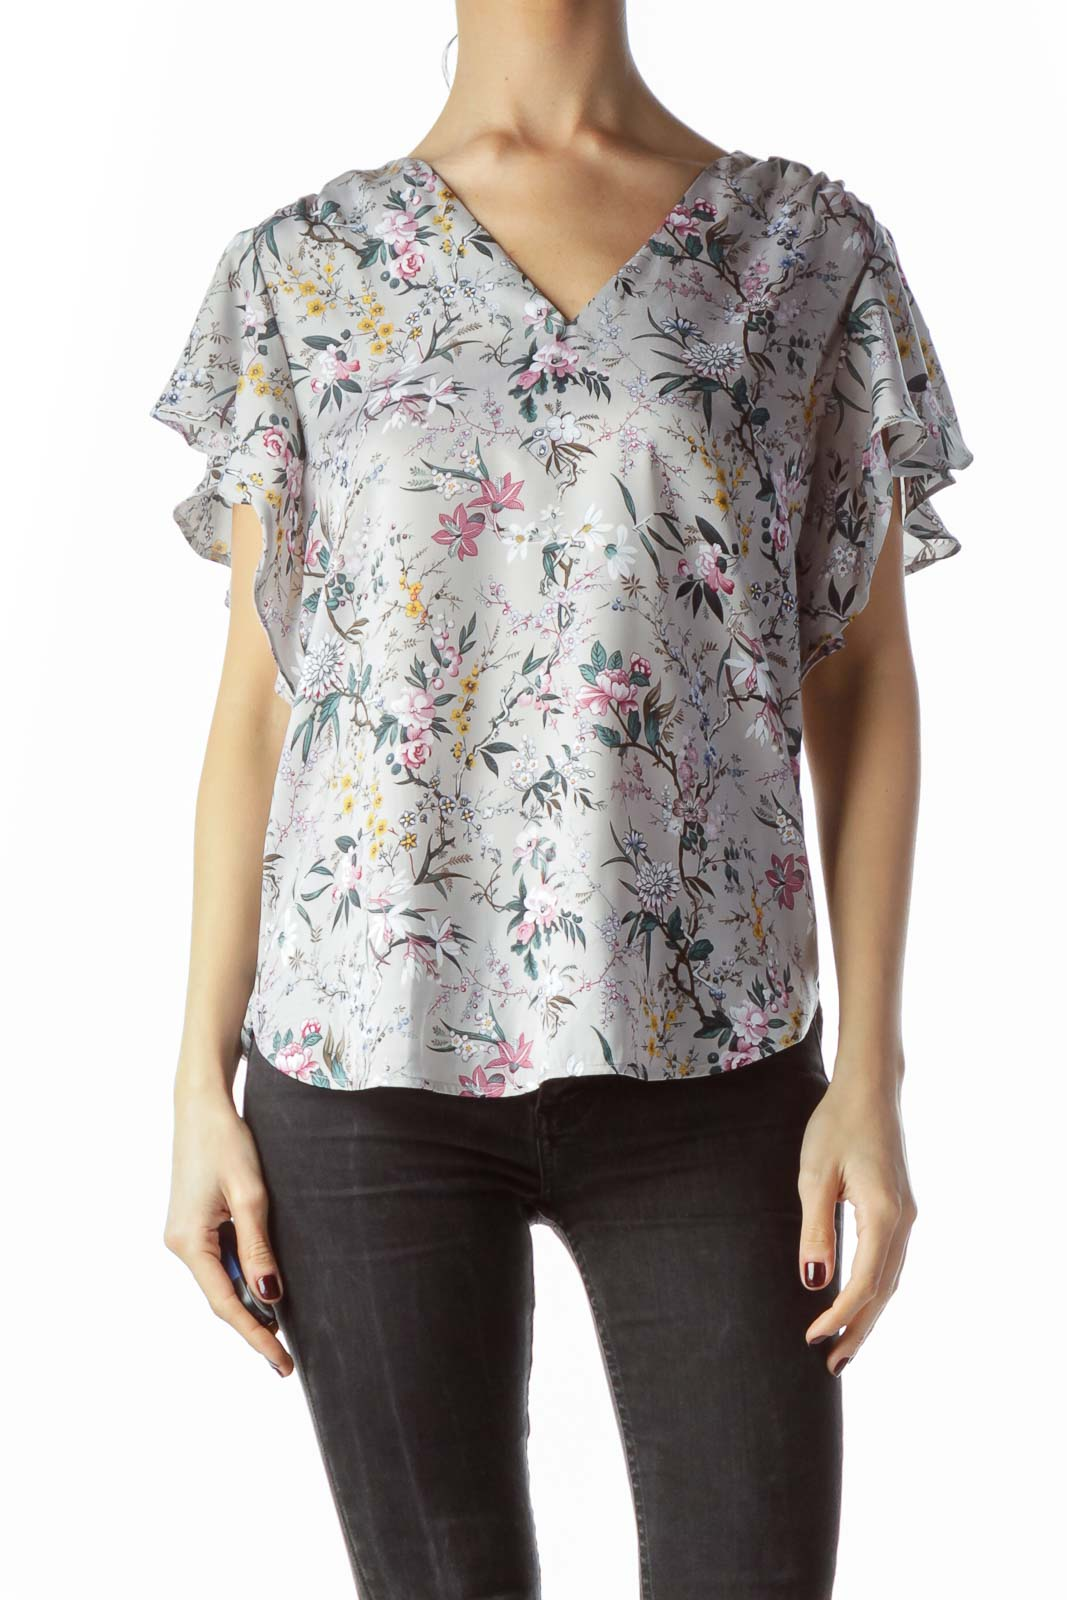 Gray Floral Print Flared Short Sleeves Blouse